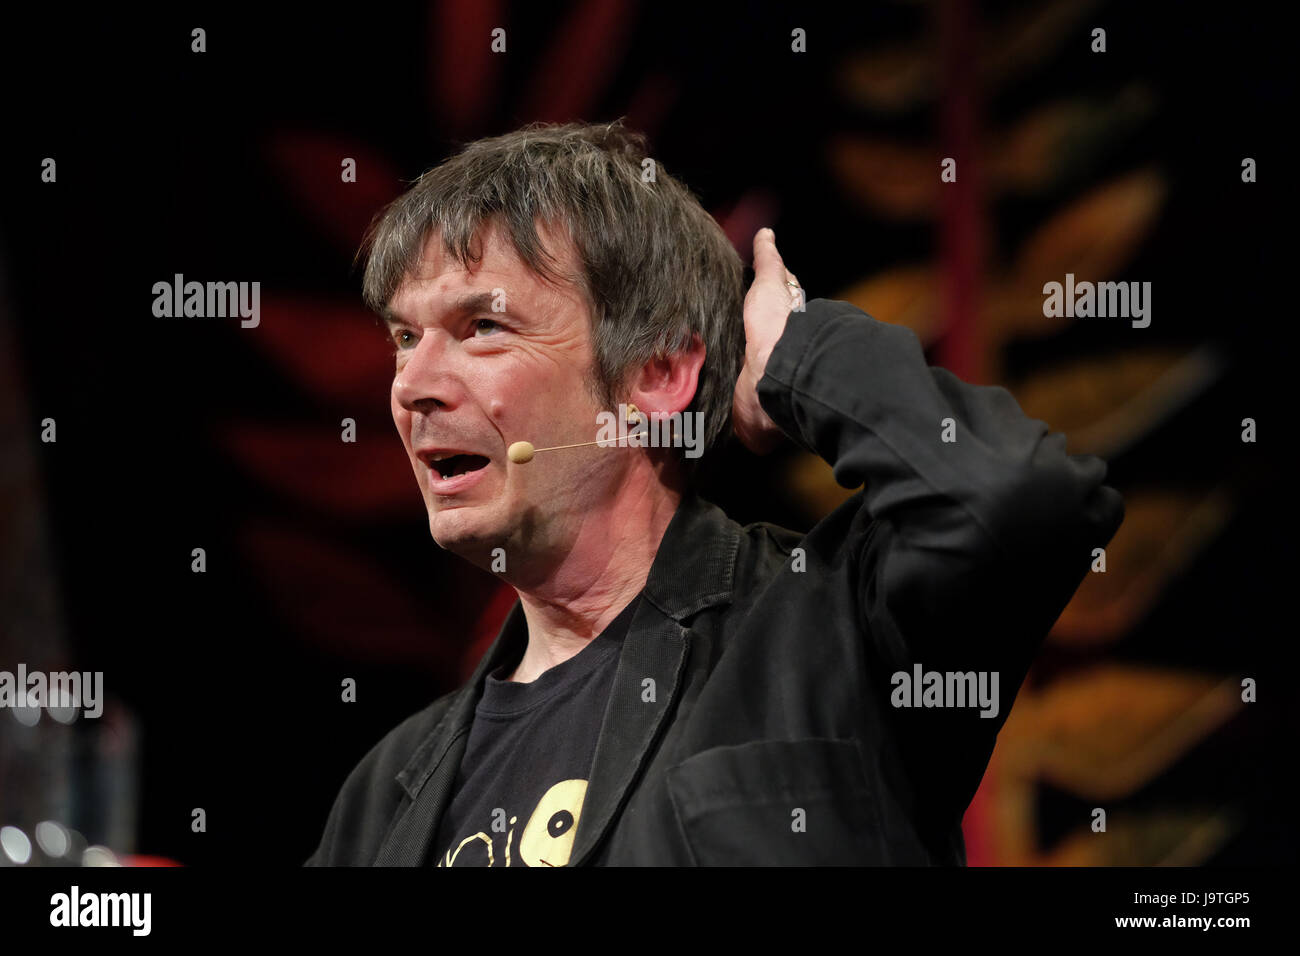 Hay Festival 2017 - Hay on Wye, Wales, UK - June 2017 - Author Ian Rankin on stage at the Hay Festival talking about - Stock Image